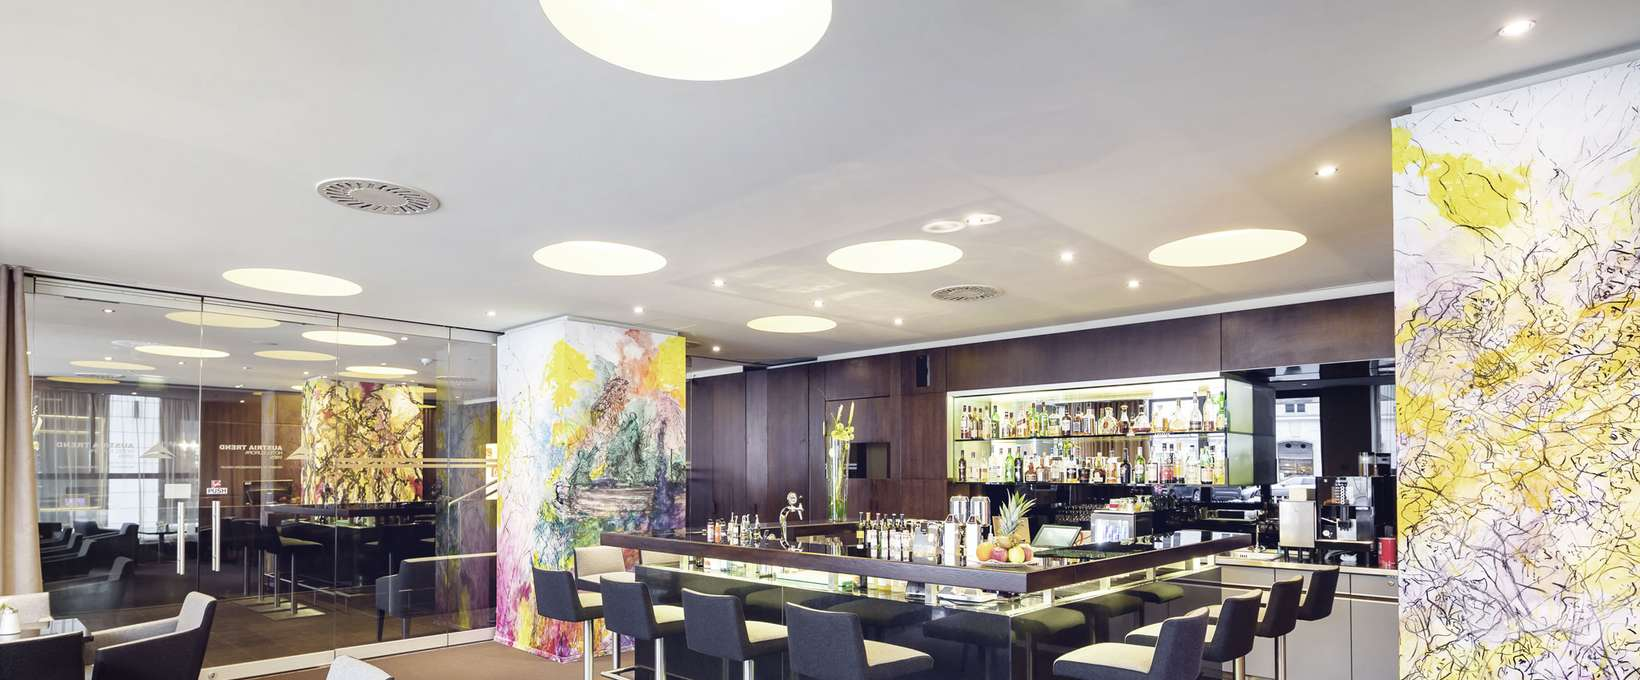 Hotel bar with counter and seating area | Hotel Europa Wien